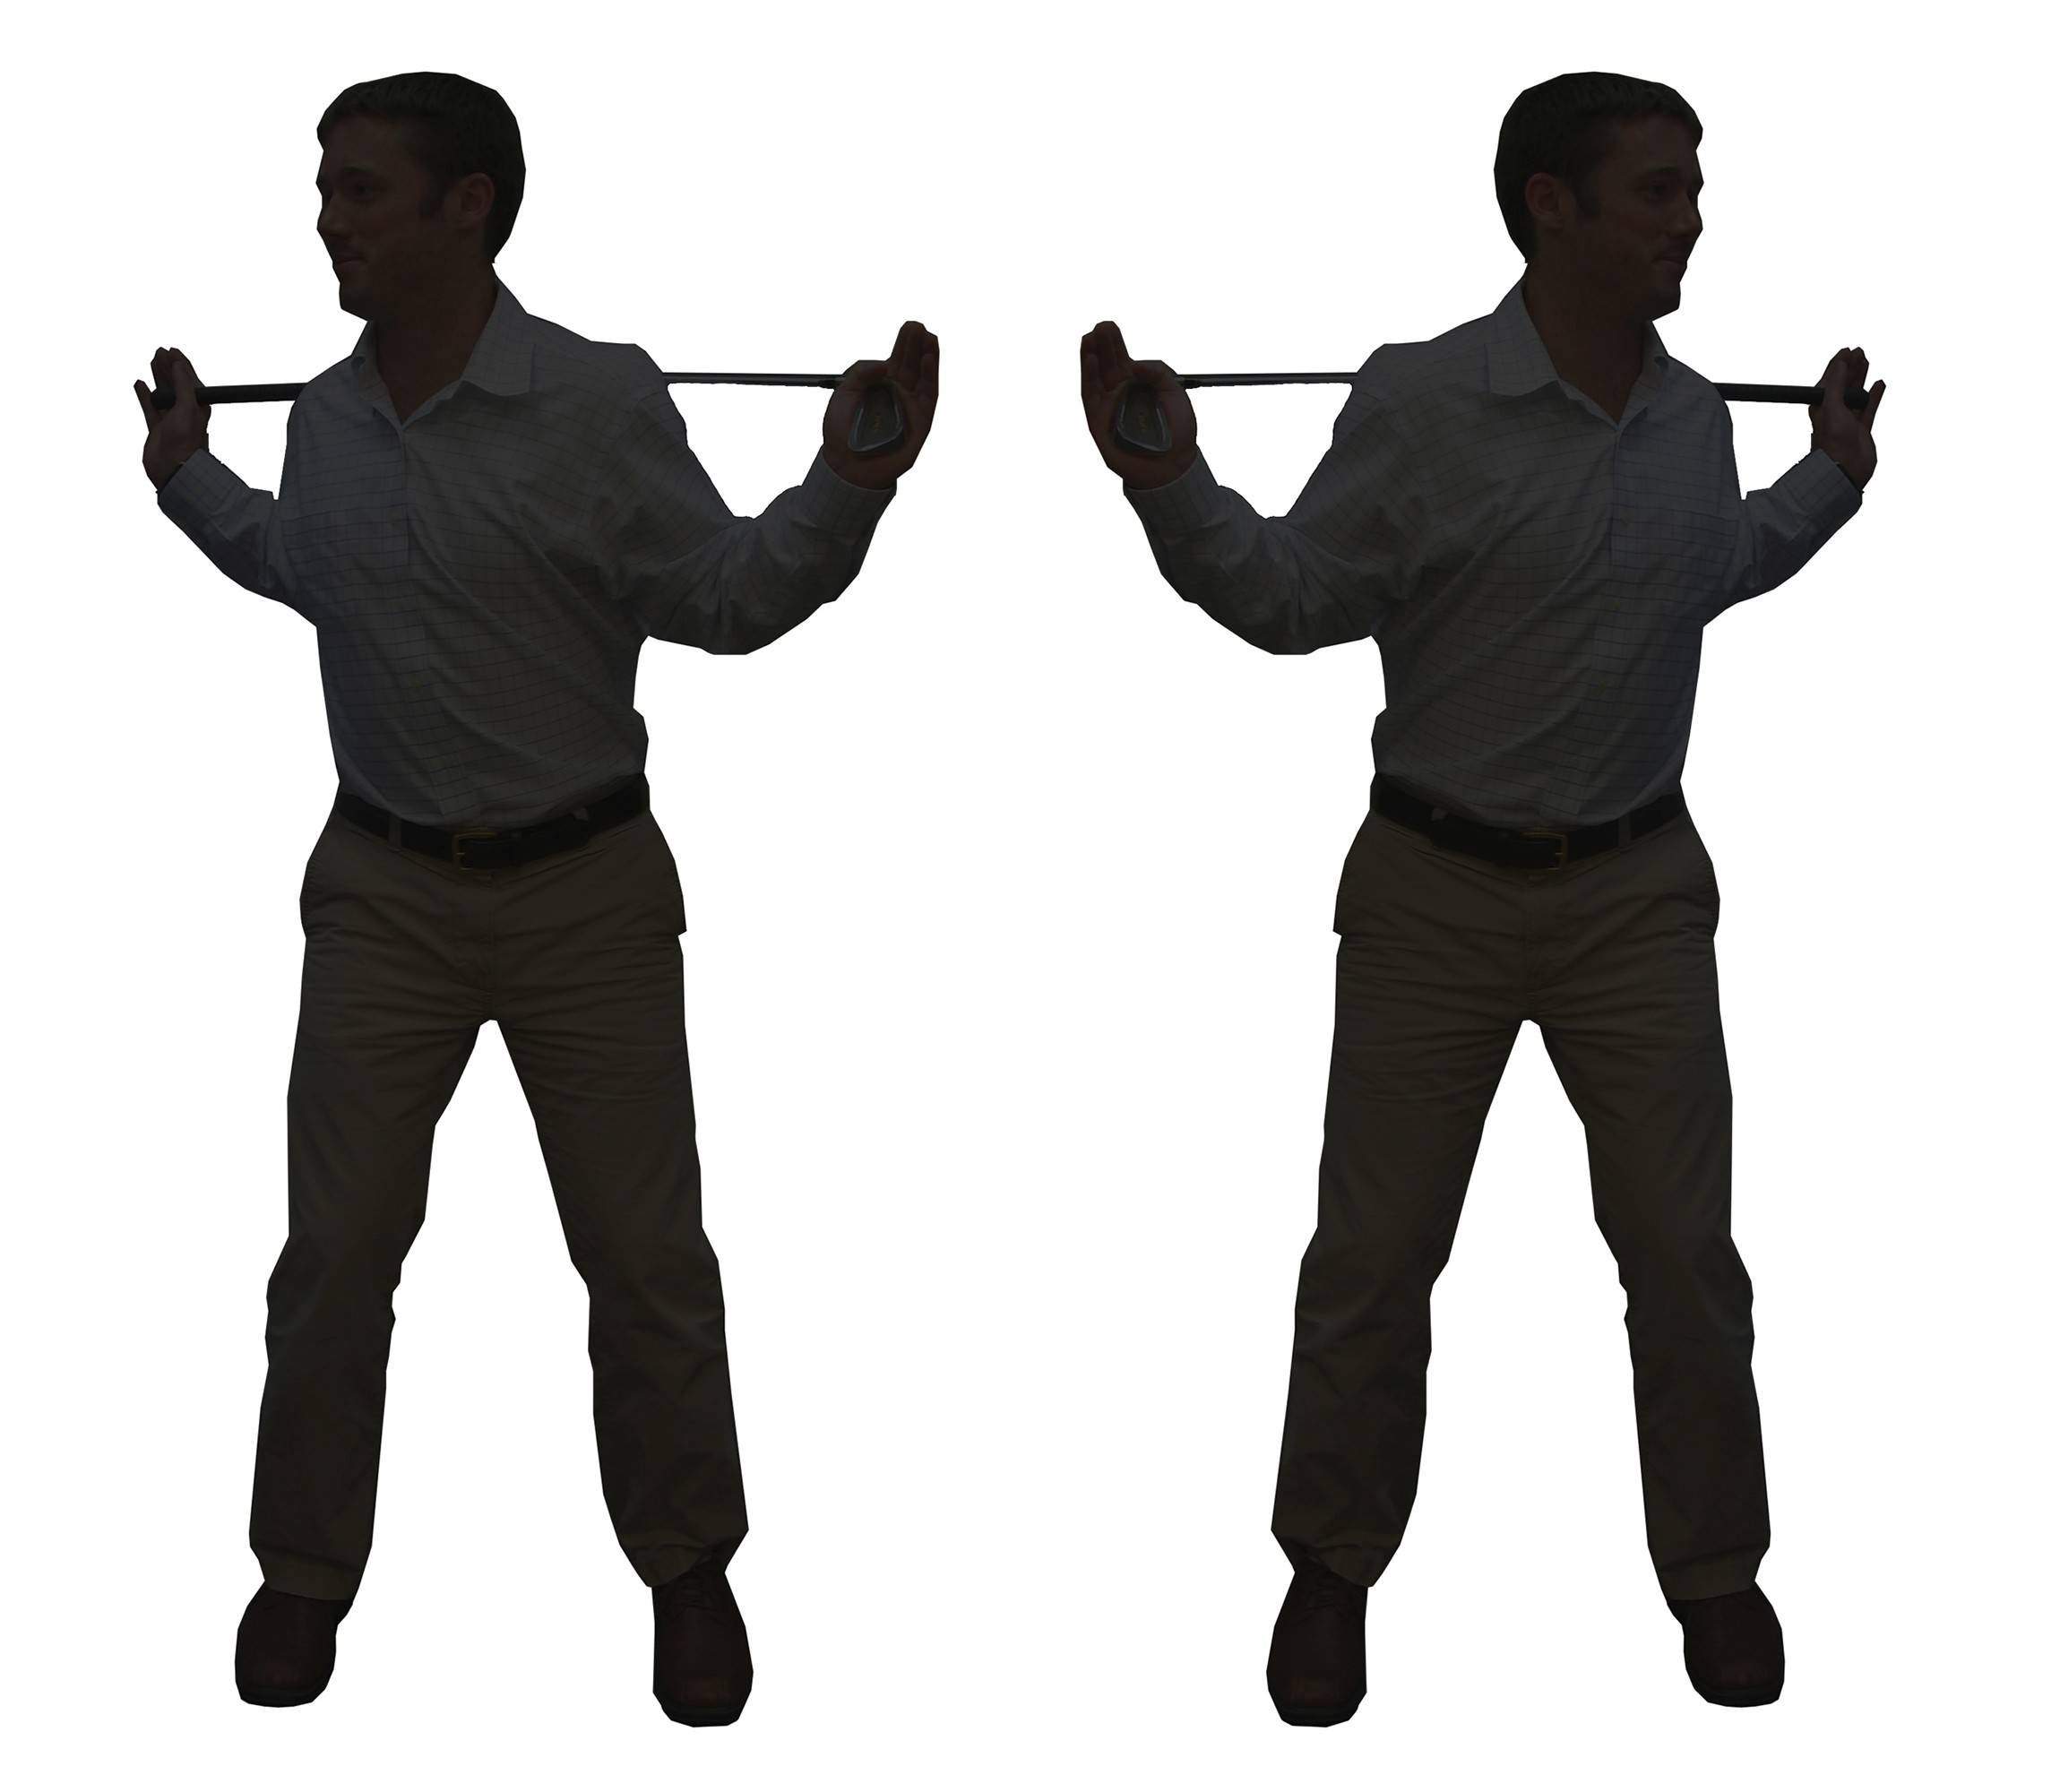 For shoulder rotation: With your hips square, hold the club behind your upper back. Rotate your shoulders until you feel your hips start to move, 10 times in each direction.